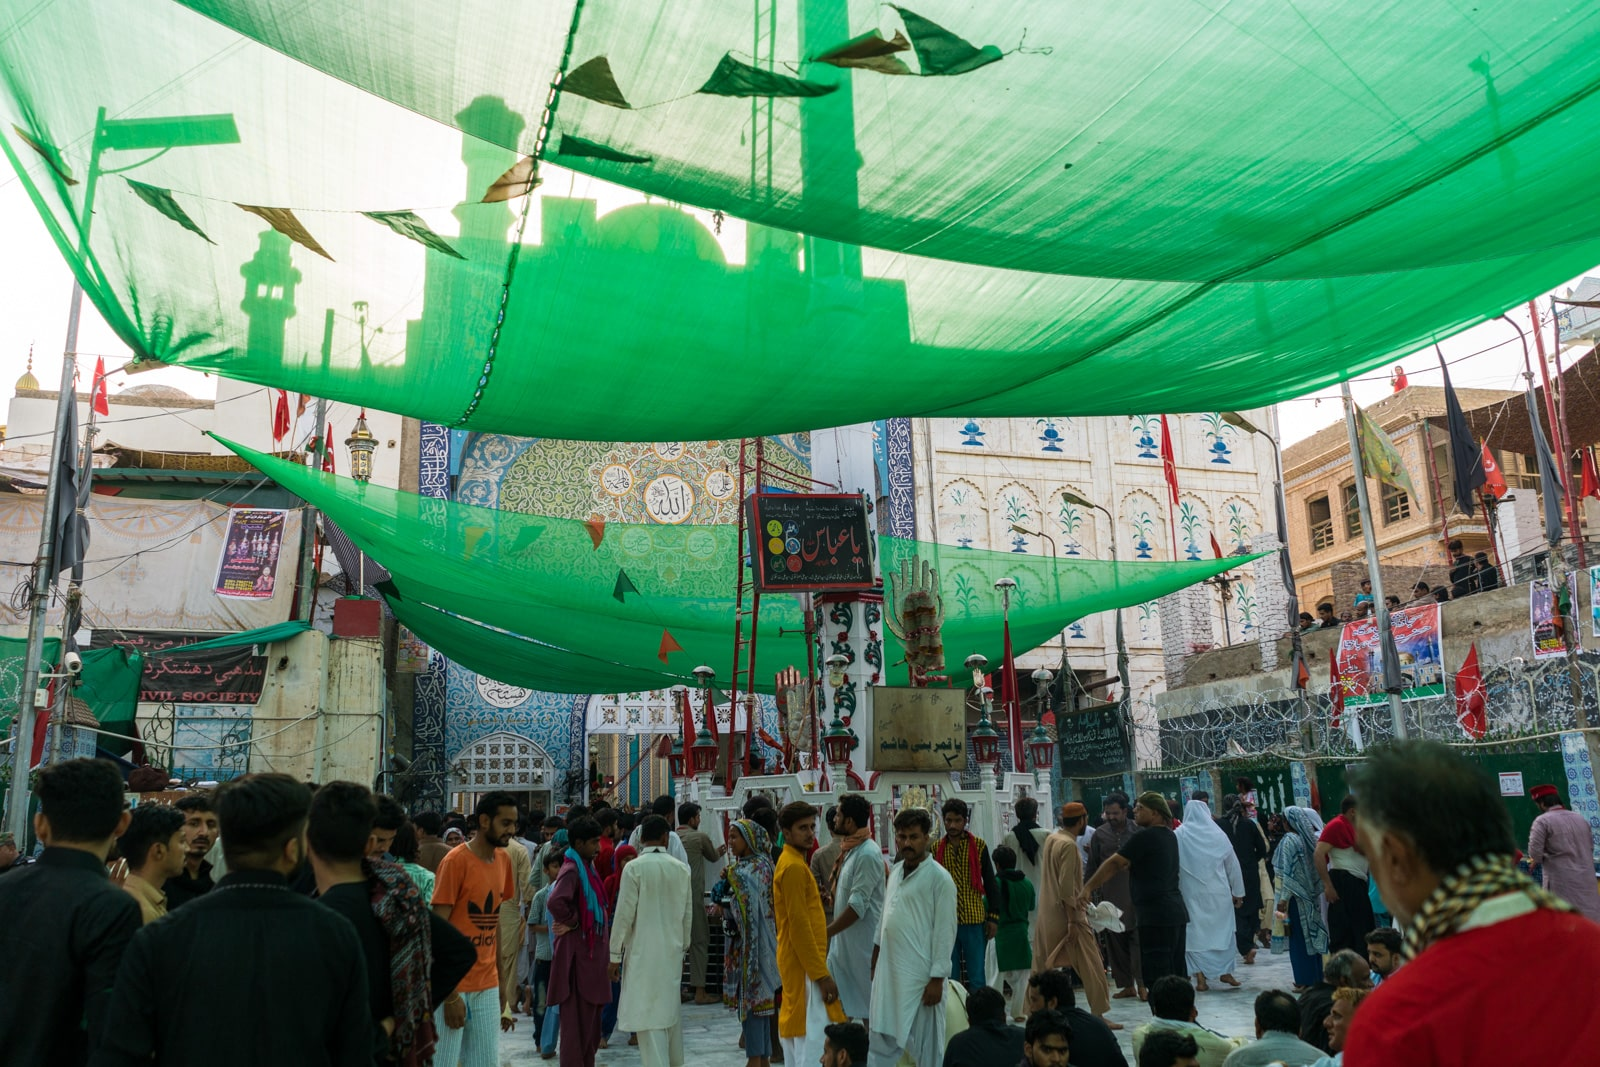 The Urs of Lal Shahbaz Qalandar in Sehwan, Pakistan - Crowd outside the shrine - Lost With Purpose travel blog